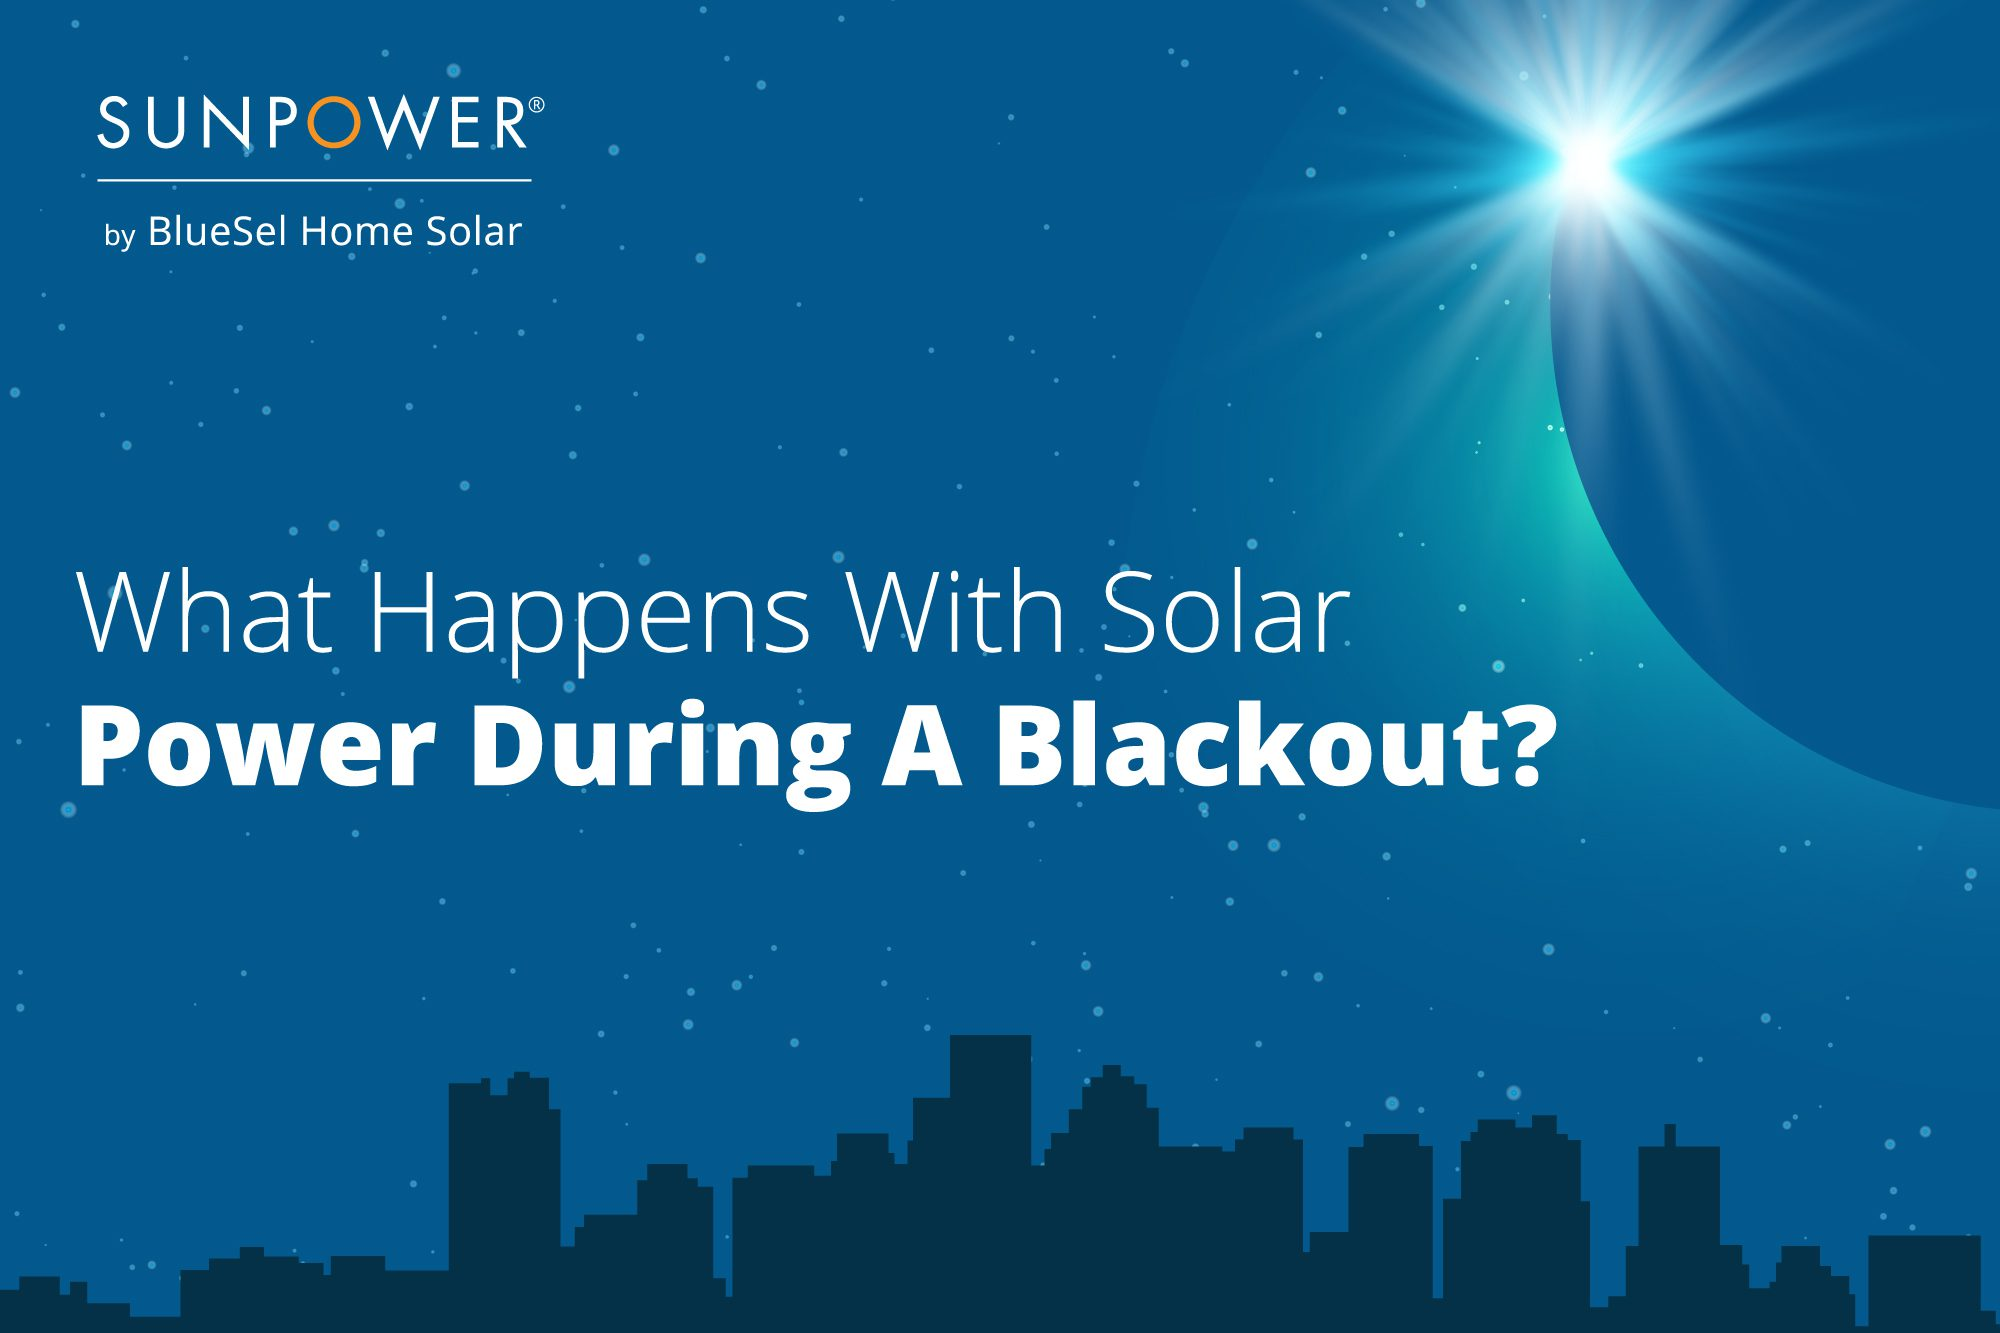 What happens with solar power during a blackout